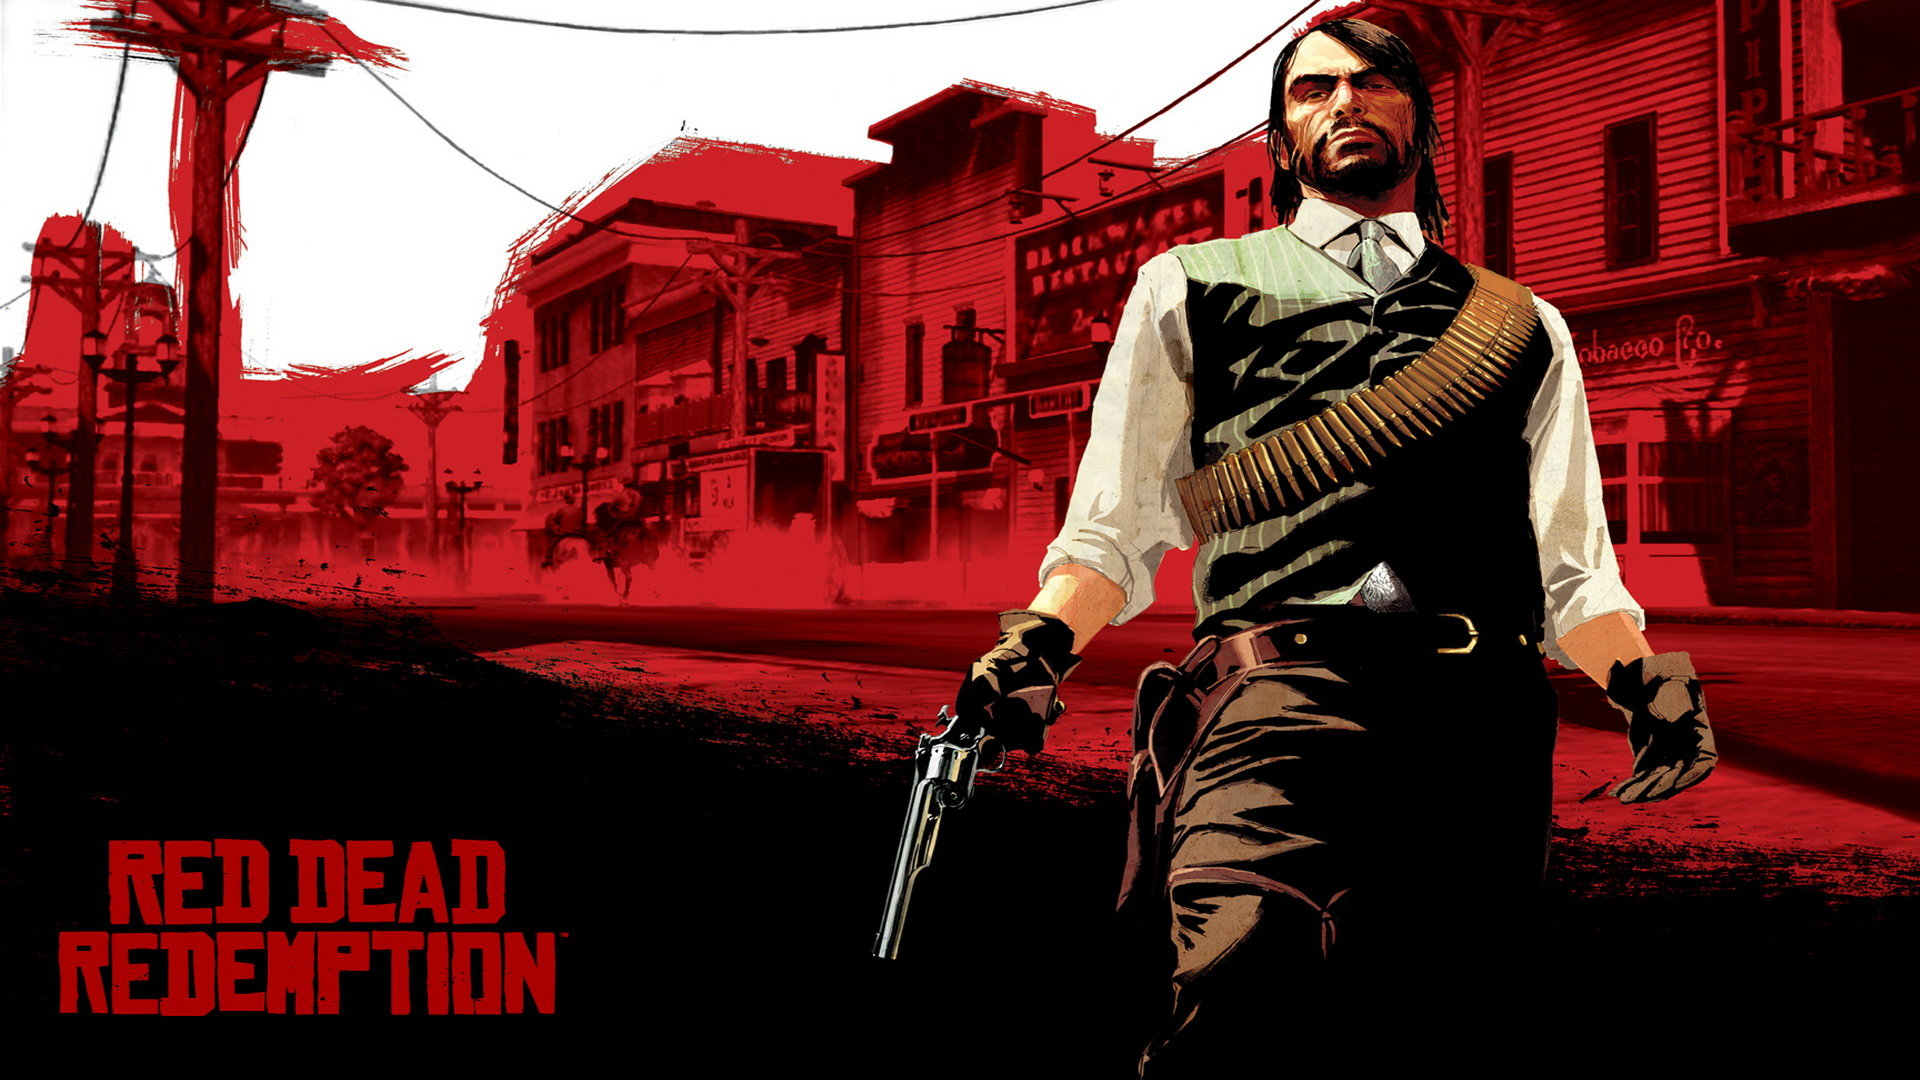 Download Hd 1920x1080 Red Dead Redemption Computer Wallpaper Id 431985 For Free